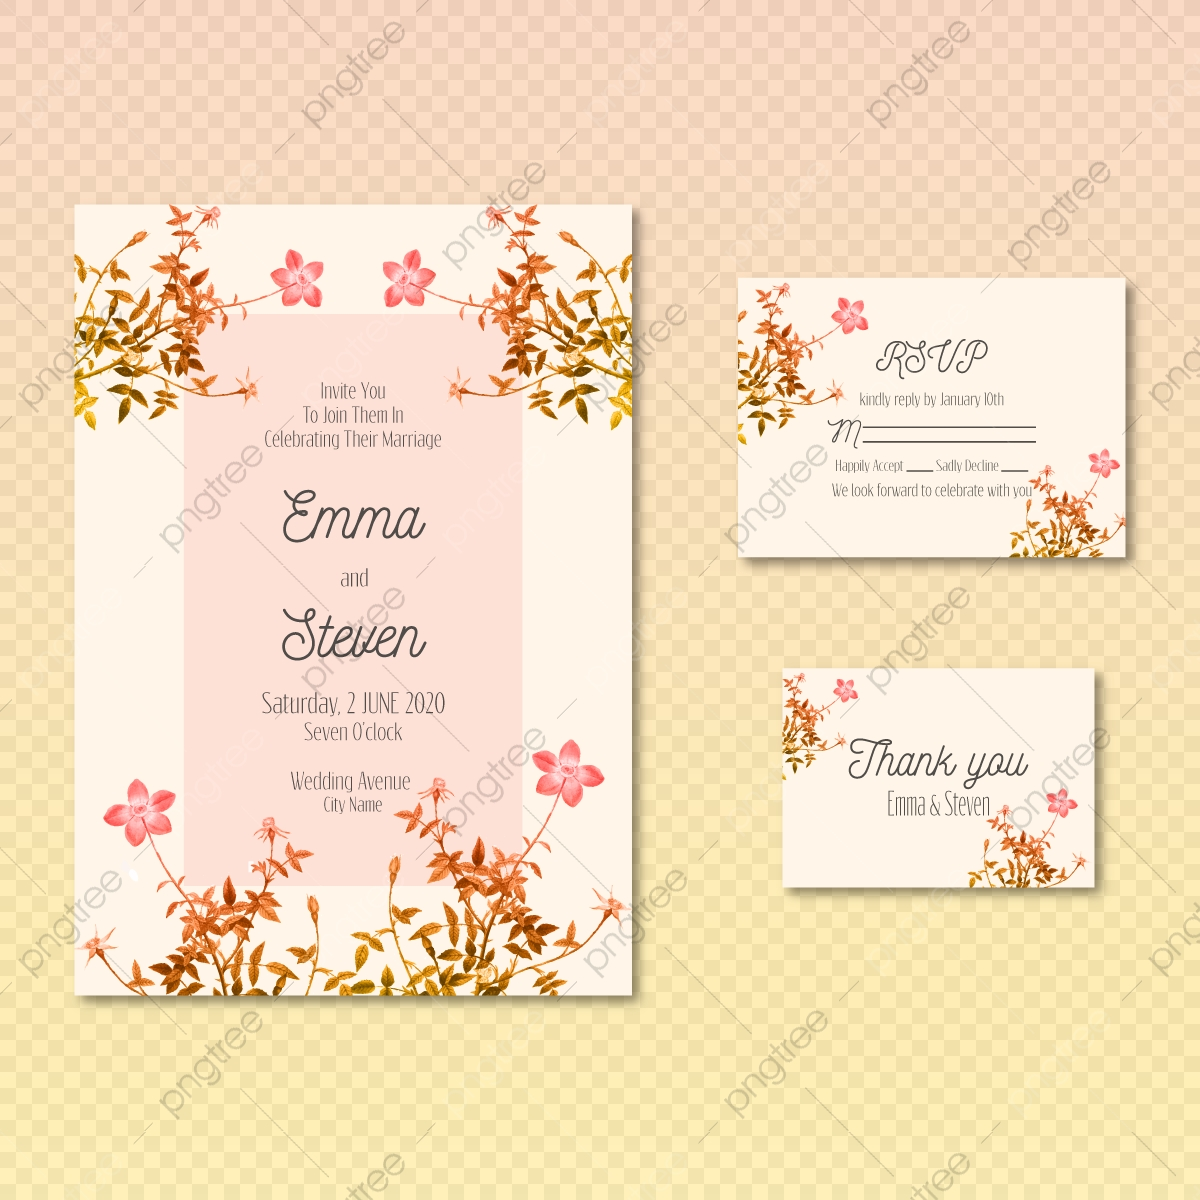 Watercolor Creamy Wedding Invitation Card Template Set With Golden Floral  Decoration Vector Illustration Template for Free Download on Pngtree